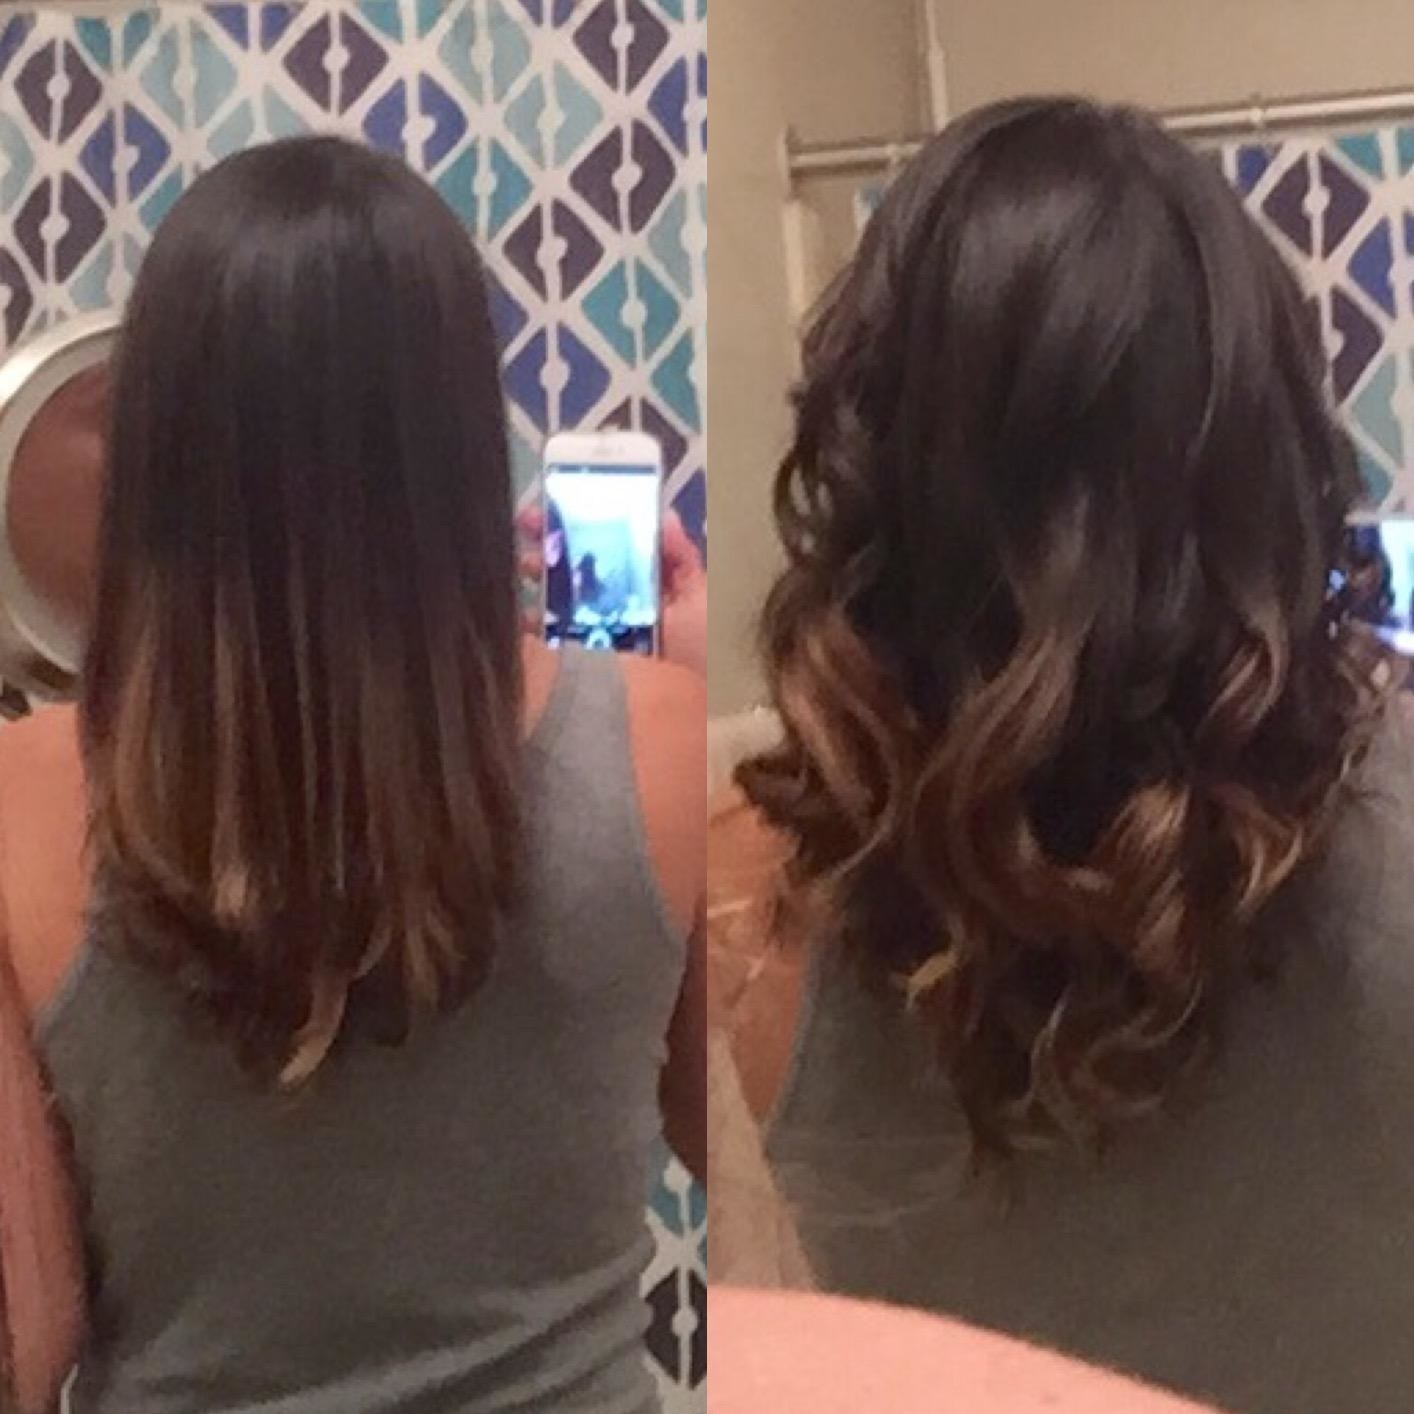 Reviewer with straight hair on the left and curls on the right